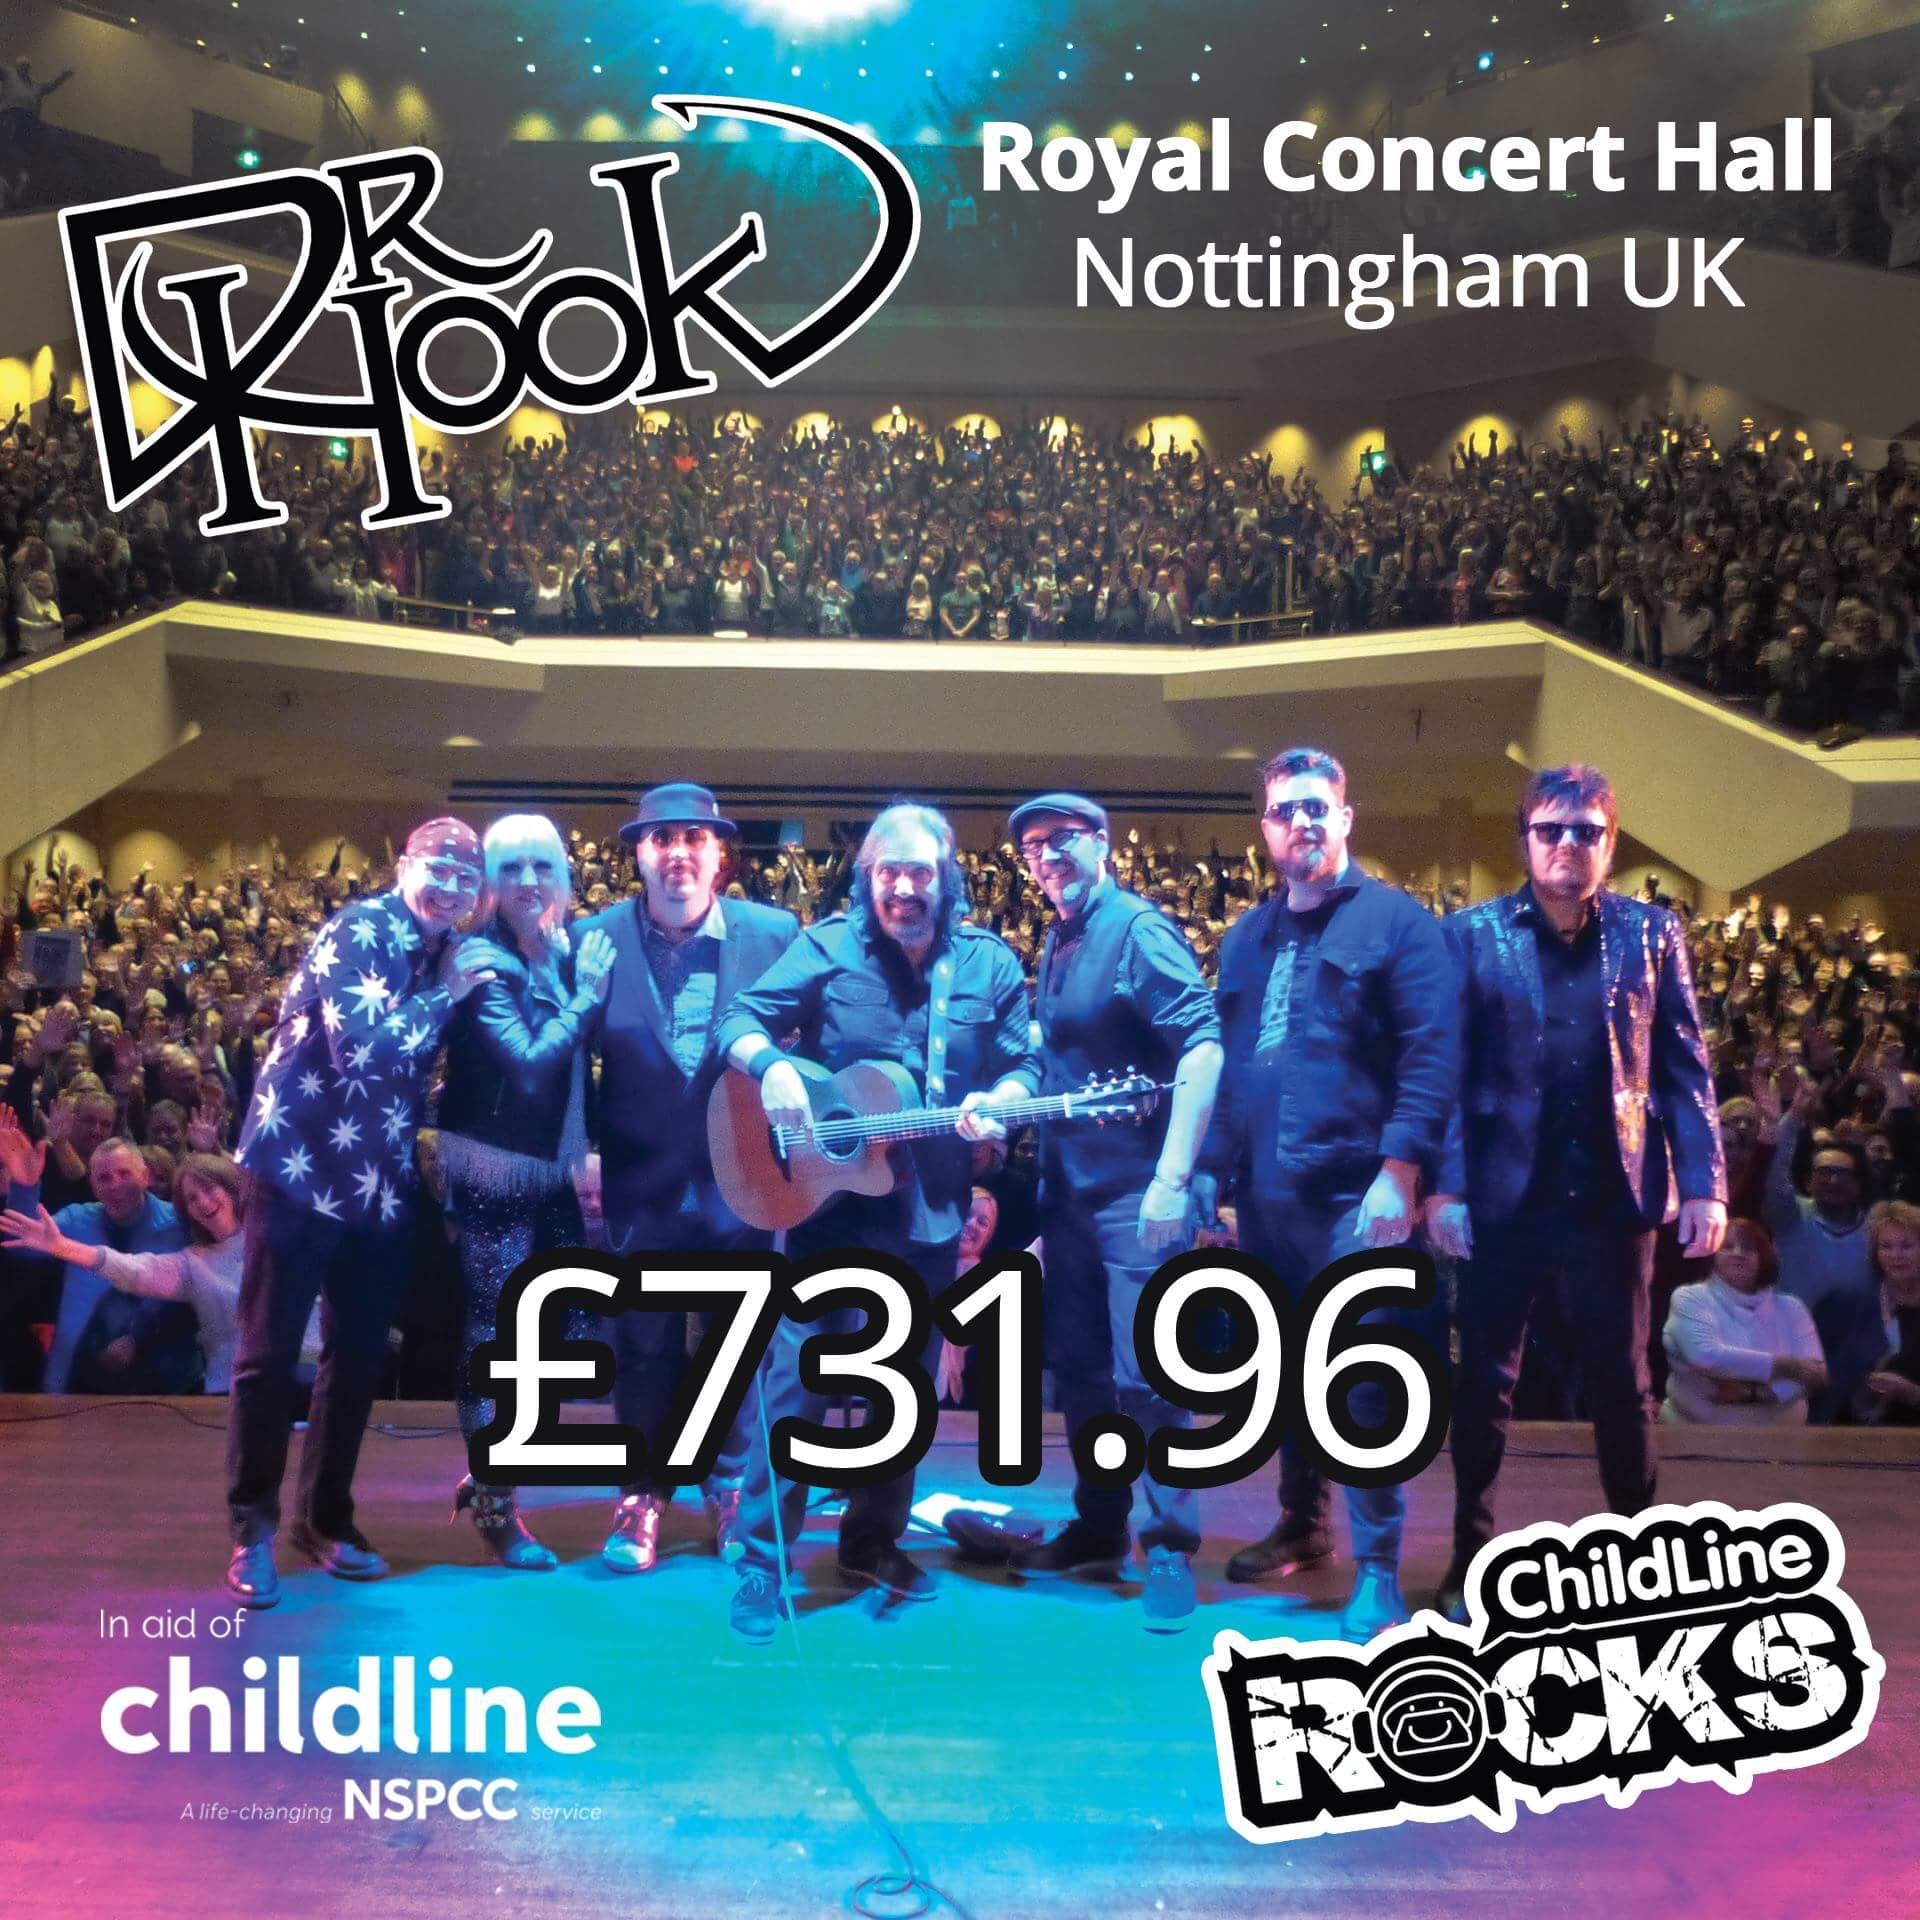 Dr Hook Fundraising NSPCC Childline - Nottingham